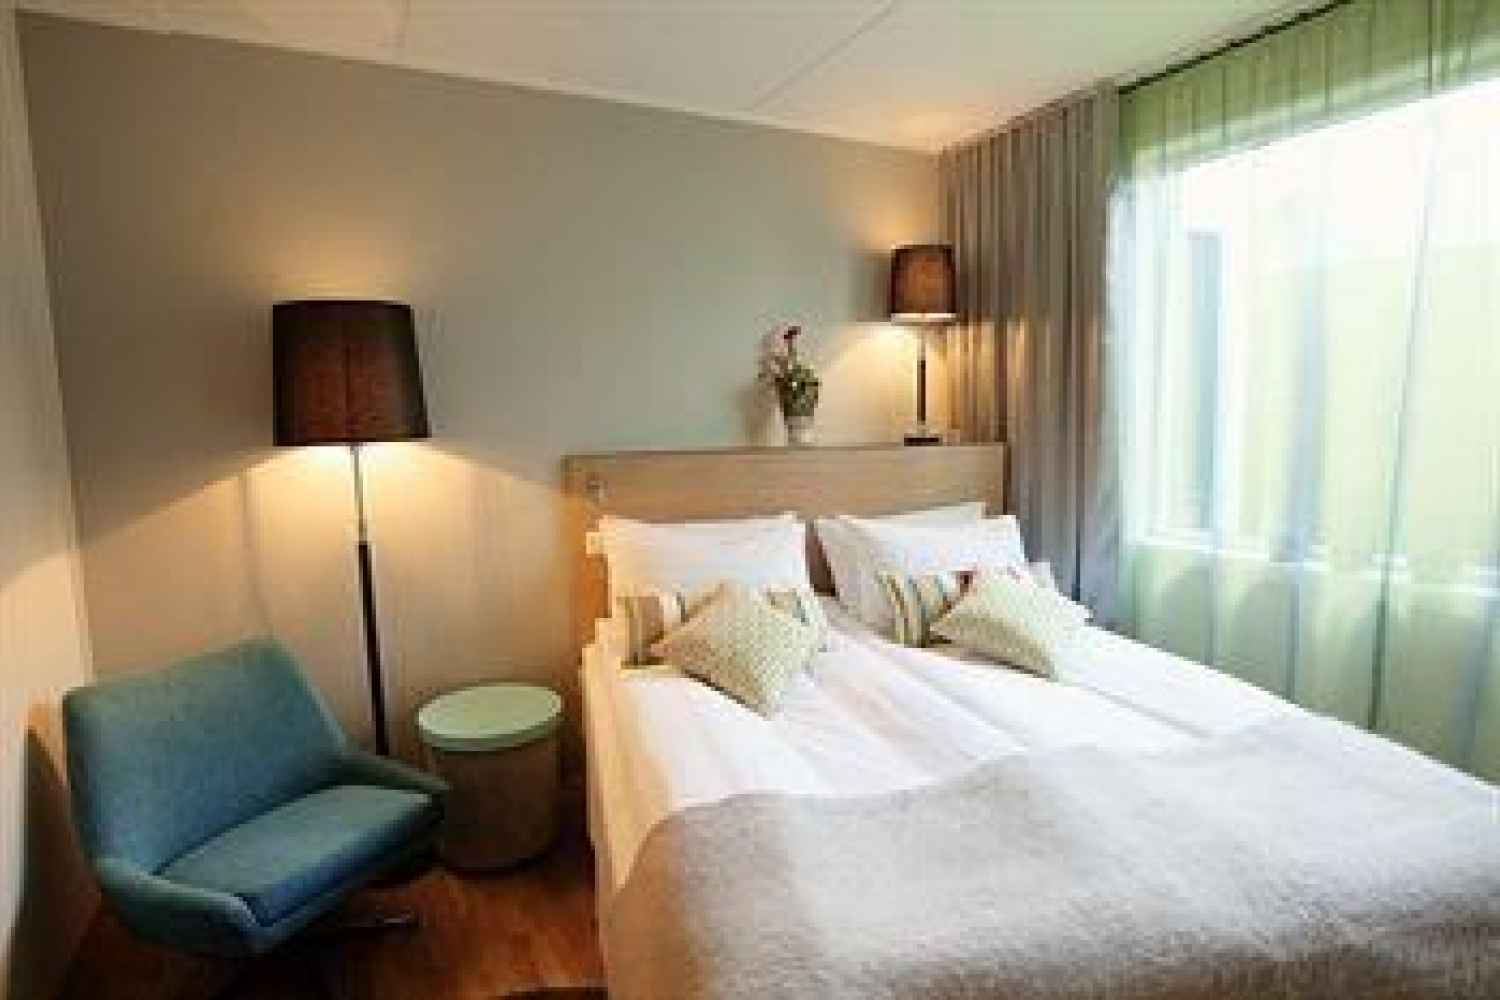 Thon Hotel Tromsø is perfect for the business traveller looking for comfort and a central location